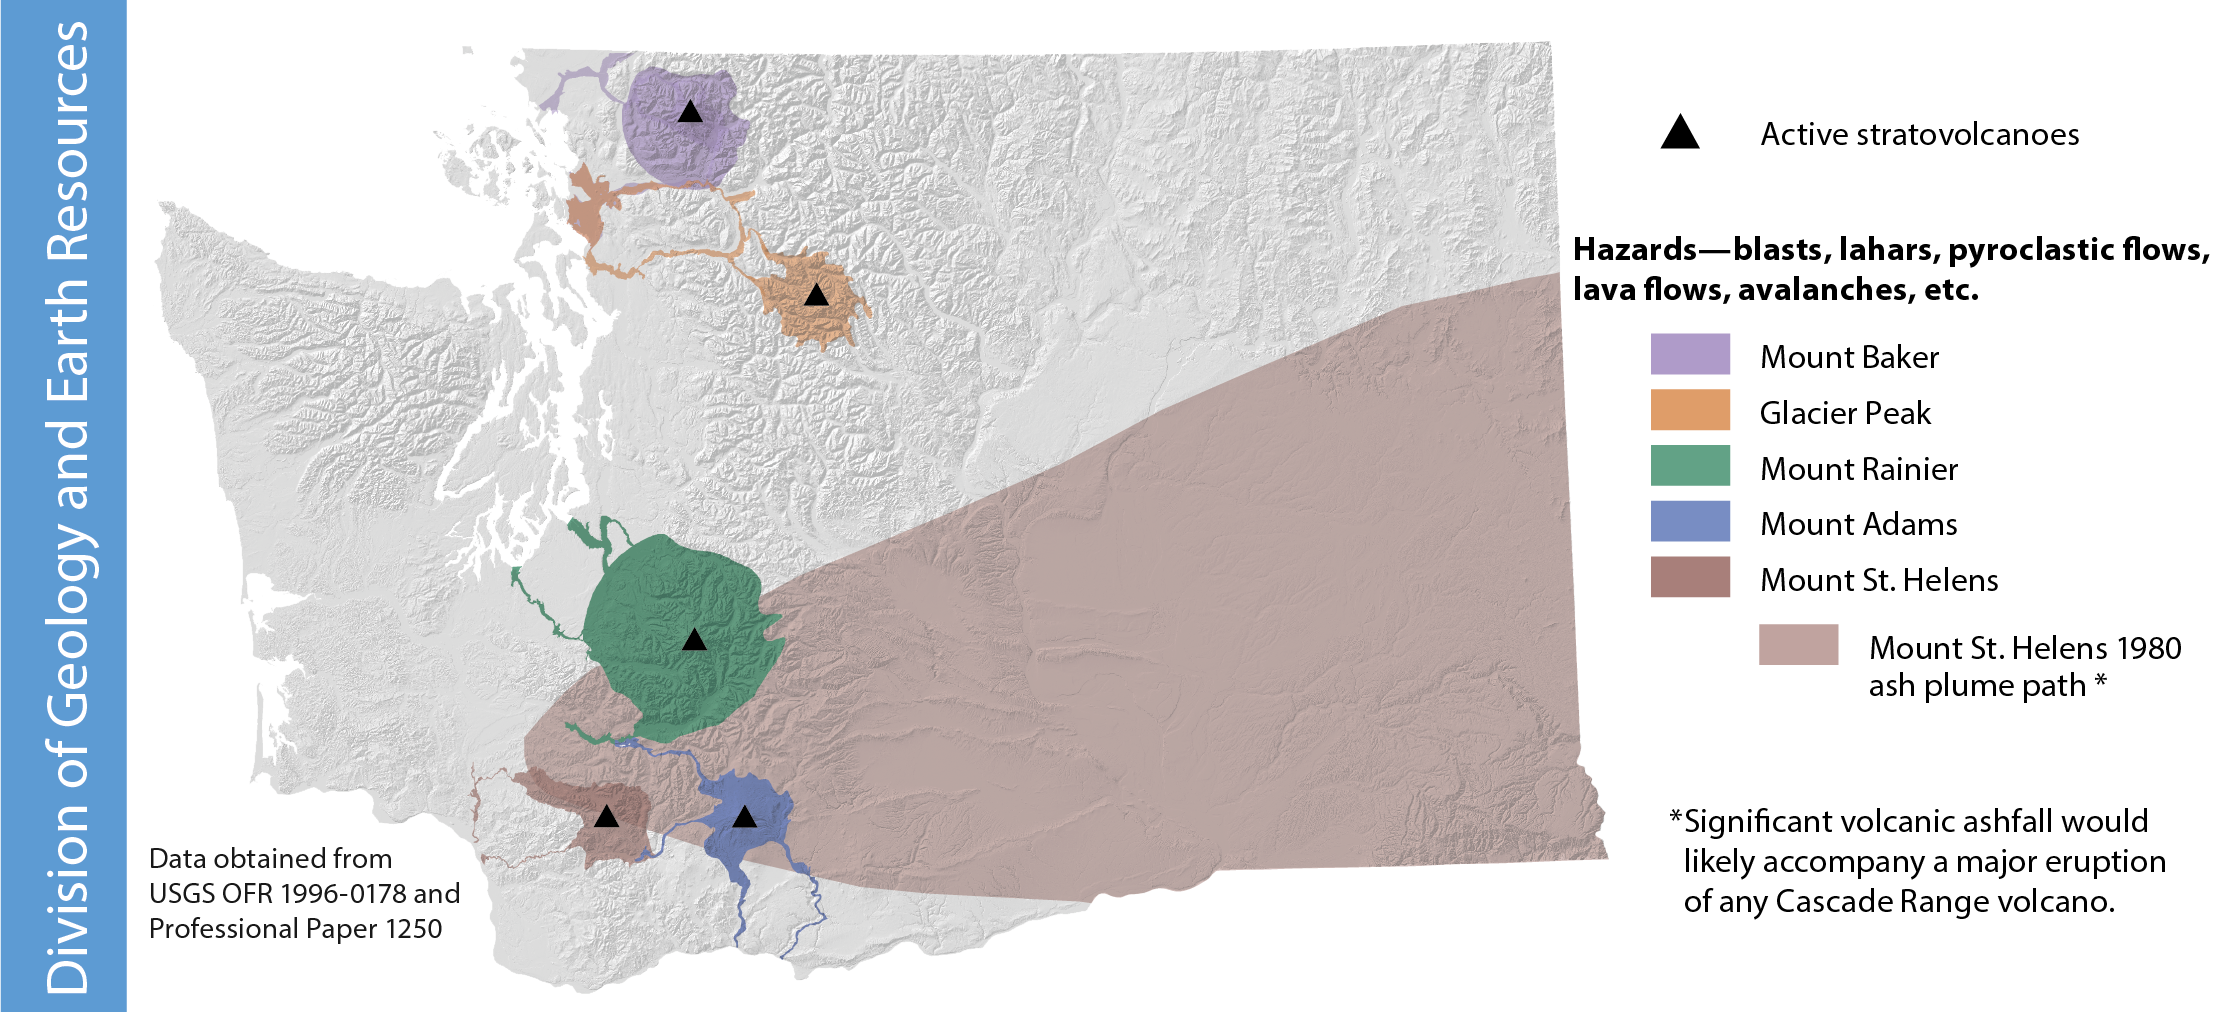 Mt St Helens Washington Map.35th Anniversary Of The Eruption Of Mount St Helens Washington